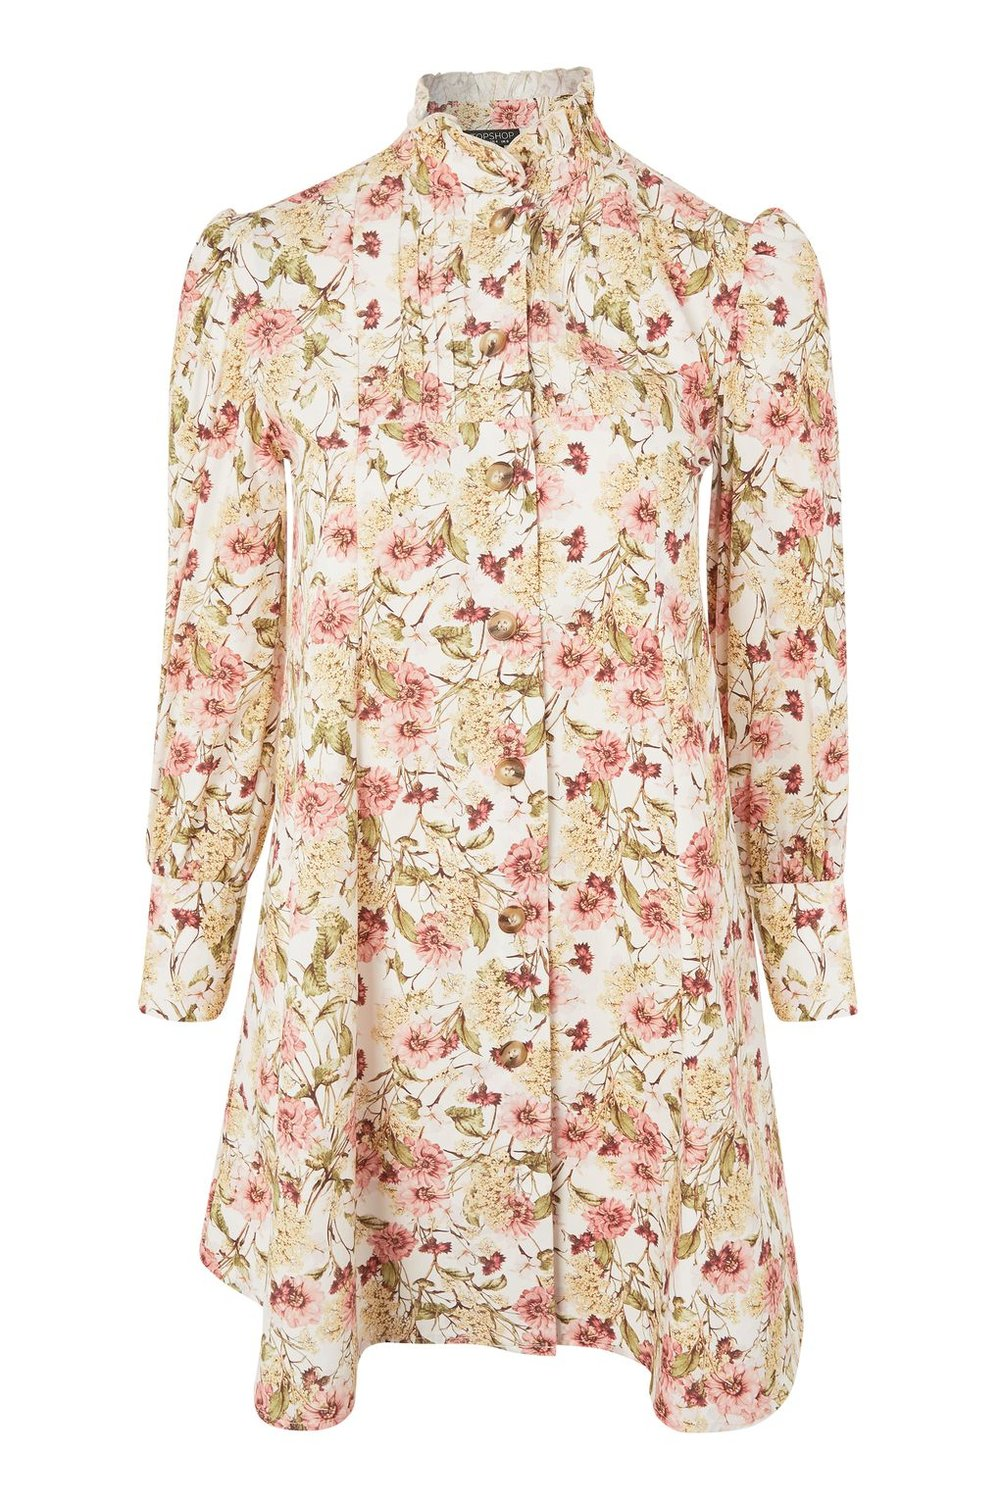 Topshop AW17 Printed Shirt Dress